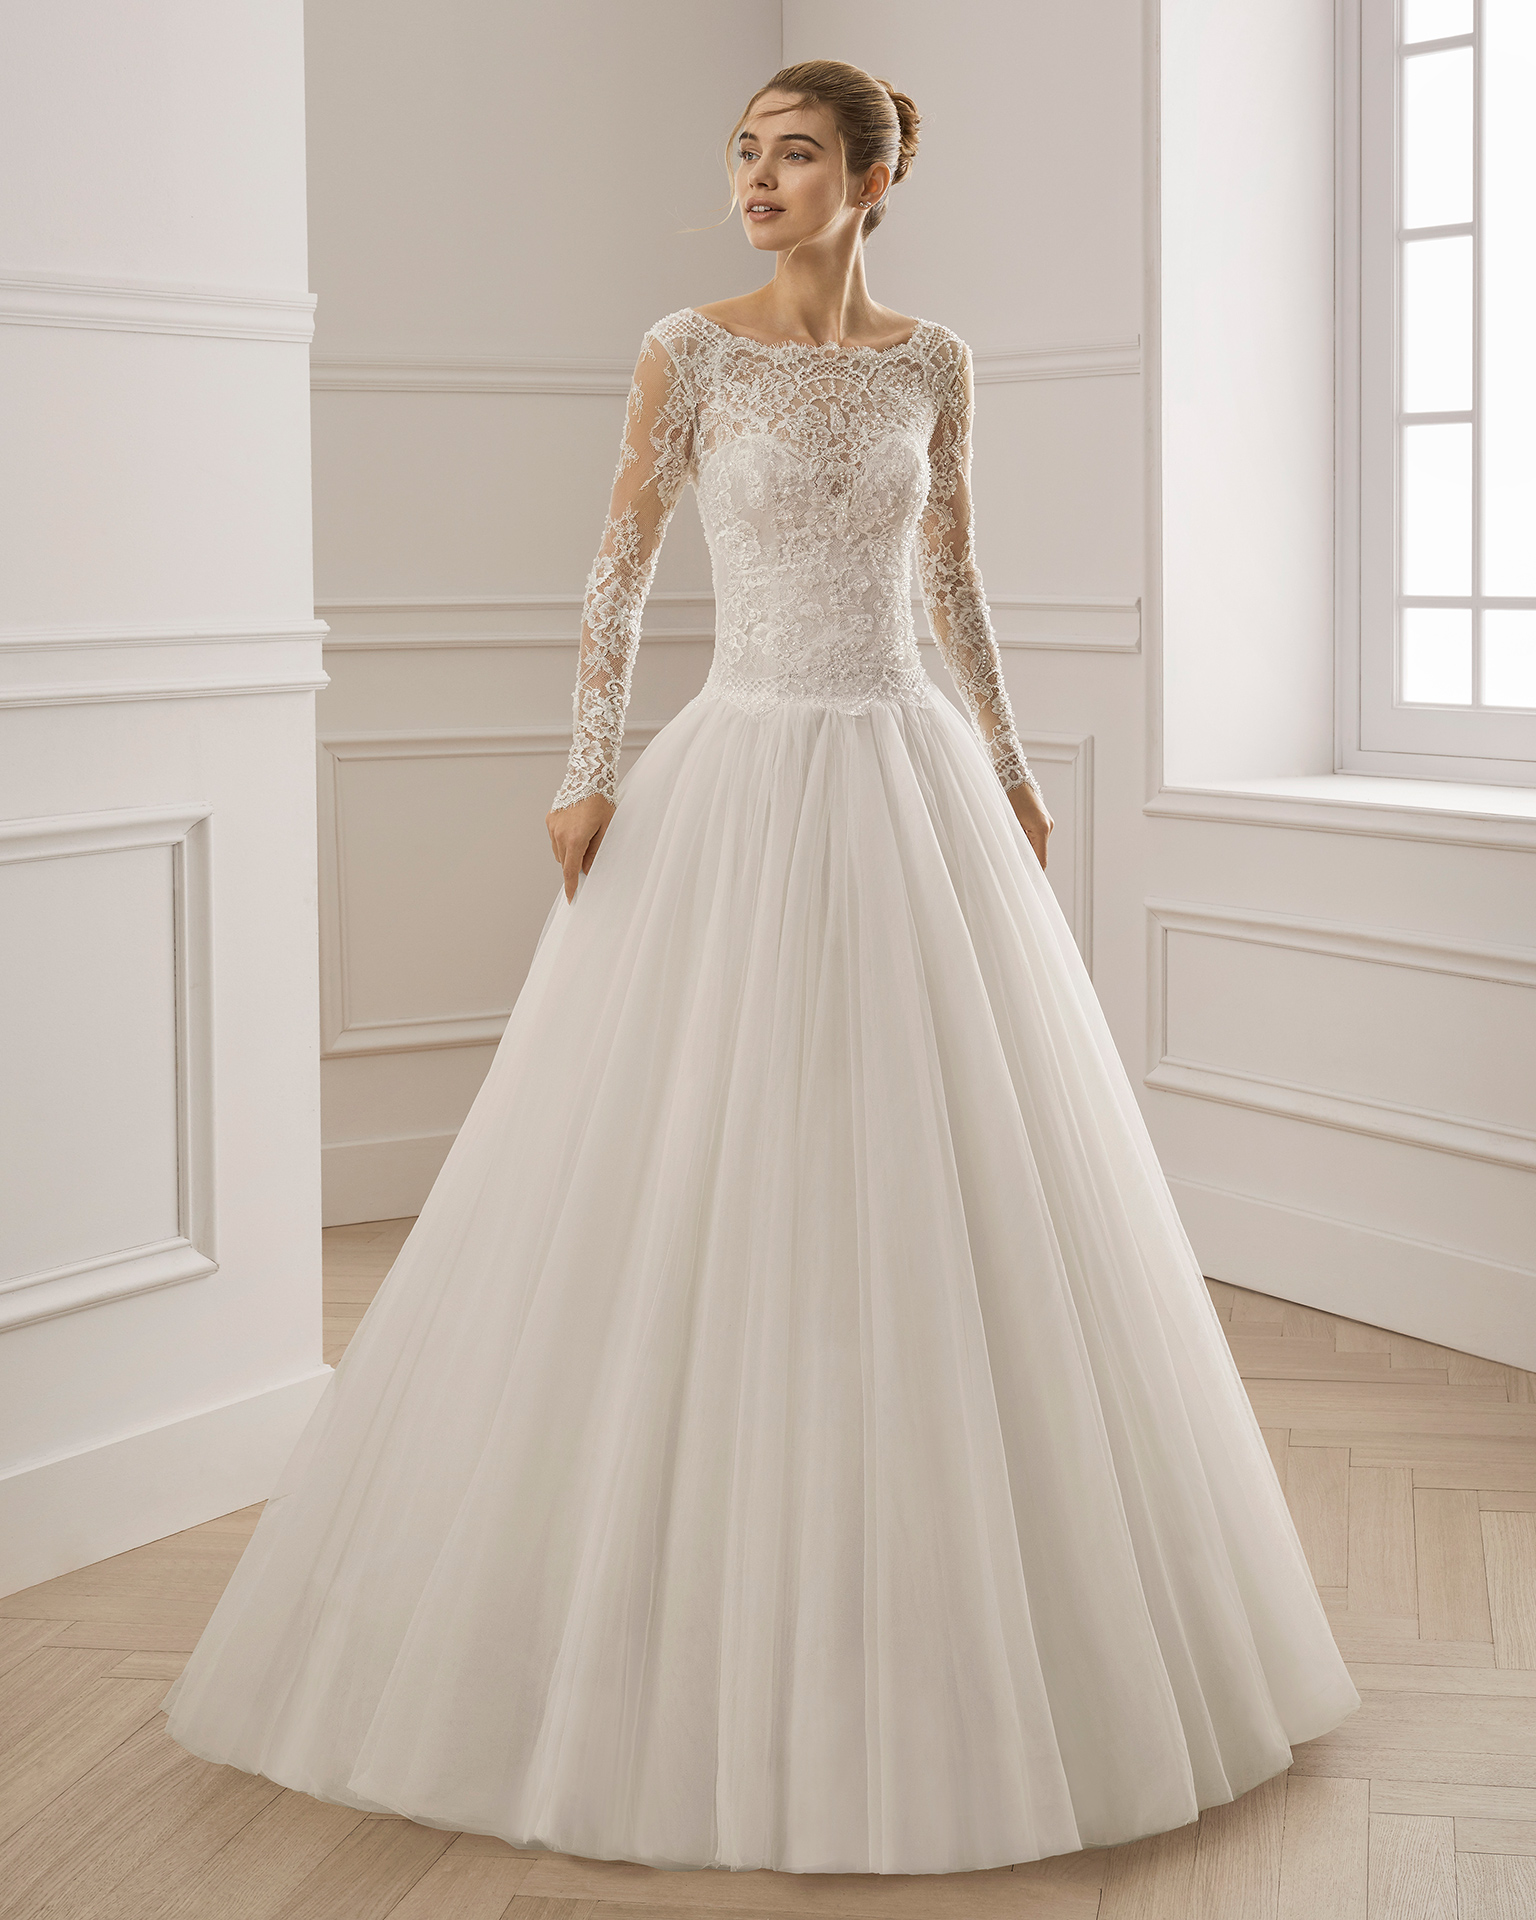 Princessstyle Beaded Lace And Tulle Wedding Dress Bateau Neckline Long Sleeves With: Wedding Dress Sleeves Princess Styles At Reisefeber.org